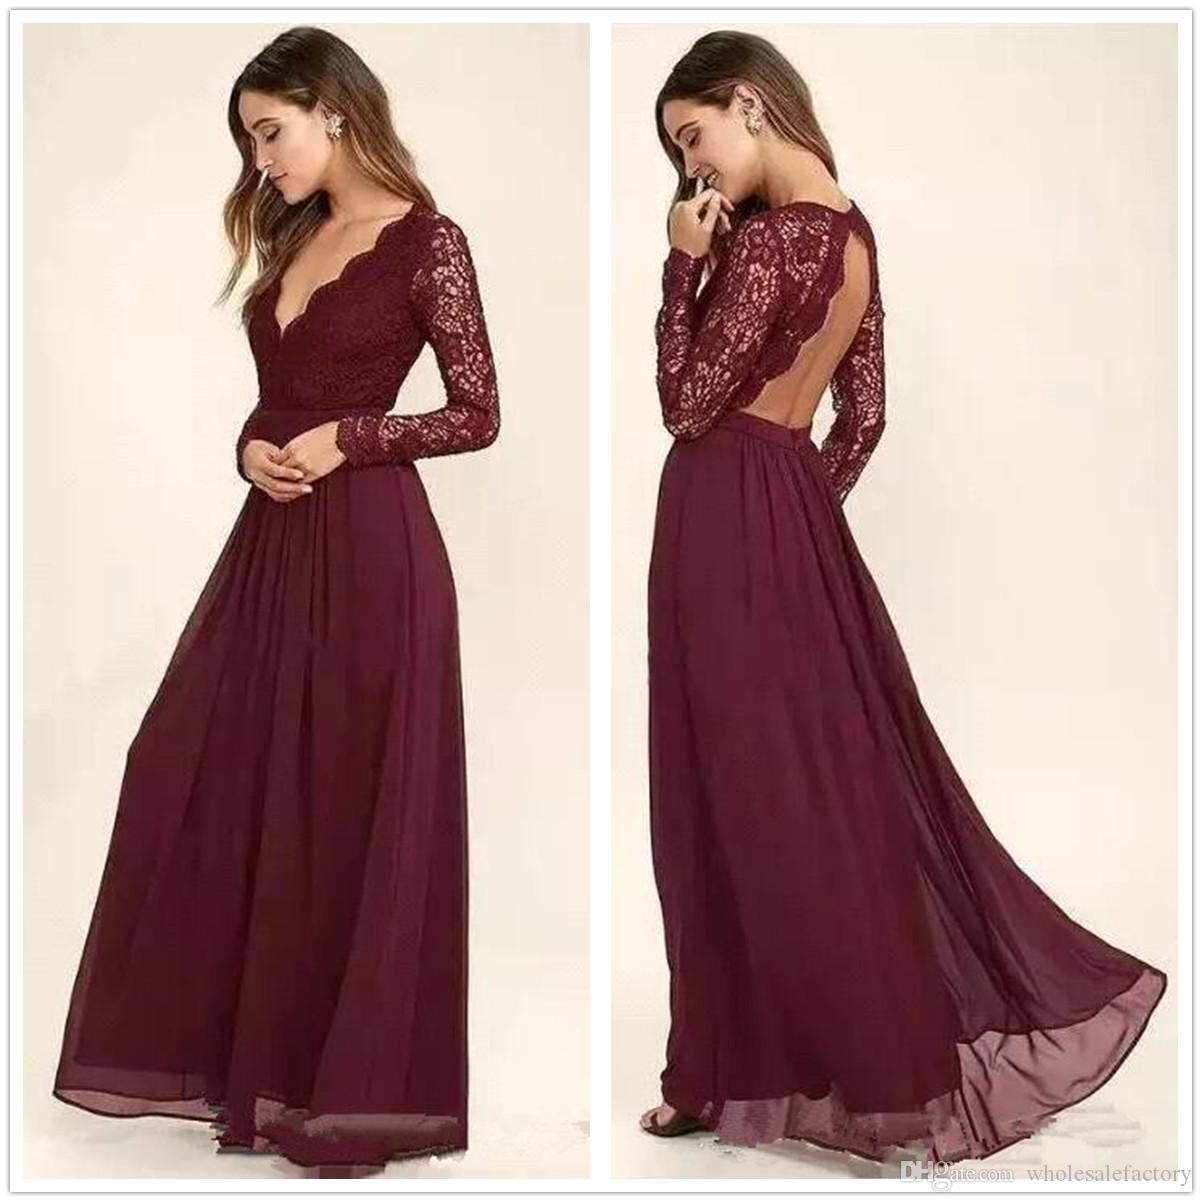 6213015ea6da 2018 Burgundy V Neck Long Sleeves Chiffon Bridesmaids Dresses Lace Top  Hollow Back Maid Of Honor Wedding Guest Prom Party Dresses Formal Dress  Dresses For ...